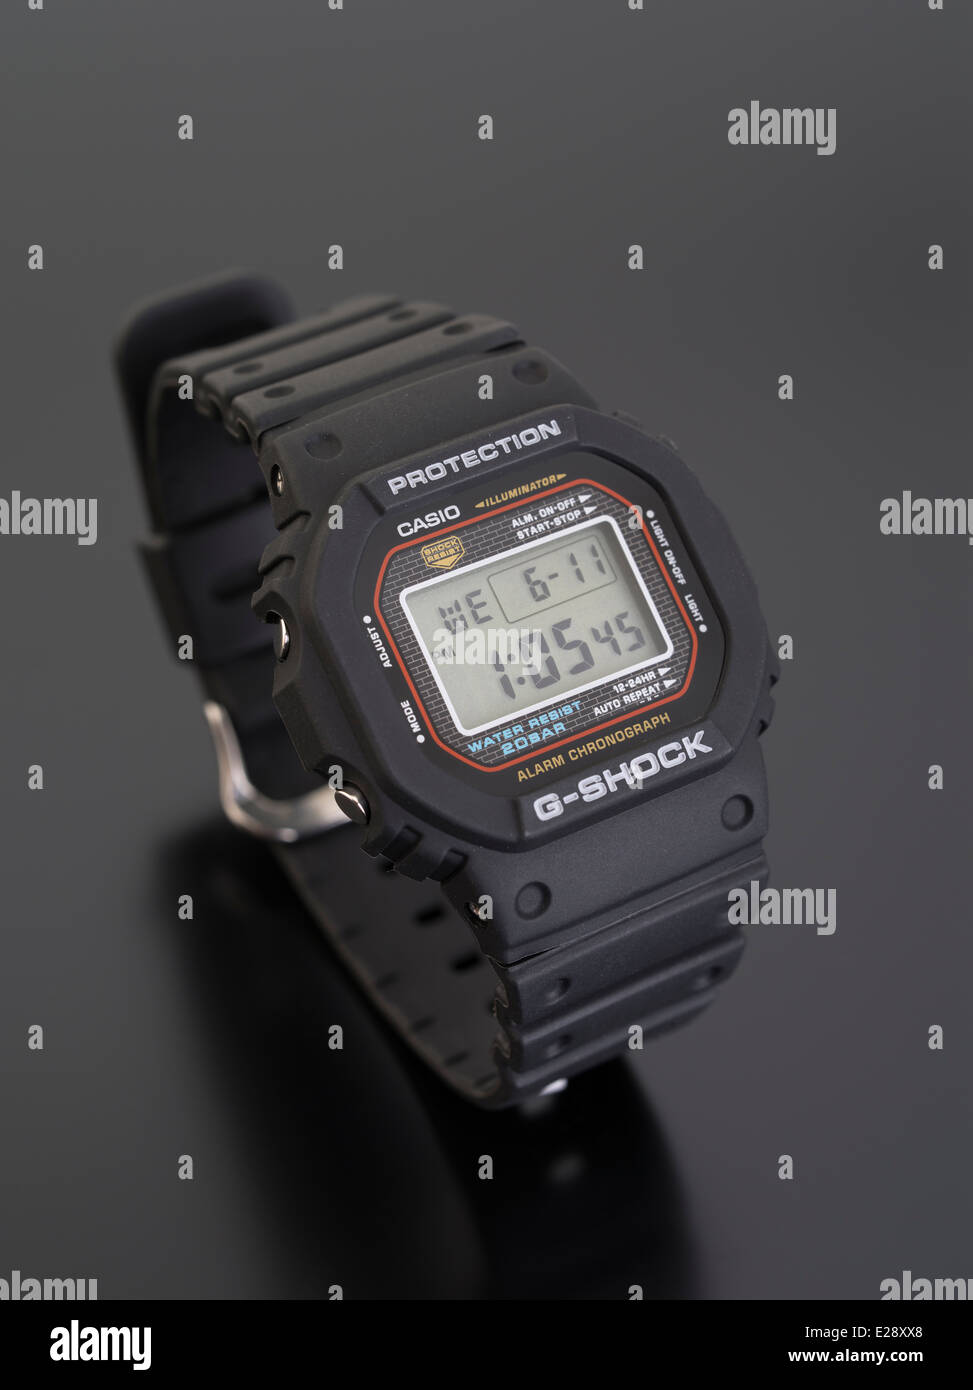 timeless design 95919 727c7 CASIO G-SHOCK DW-5000C digital watch first released in 1983 ...